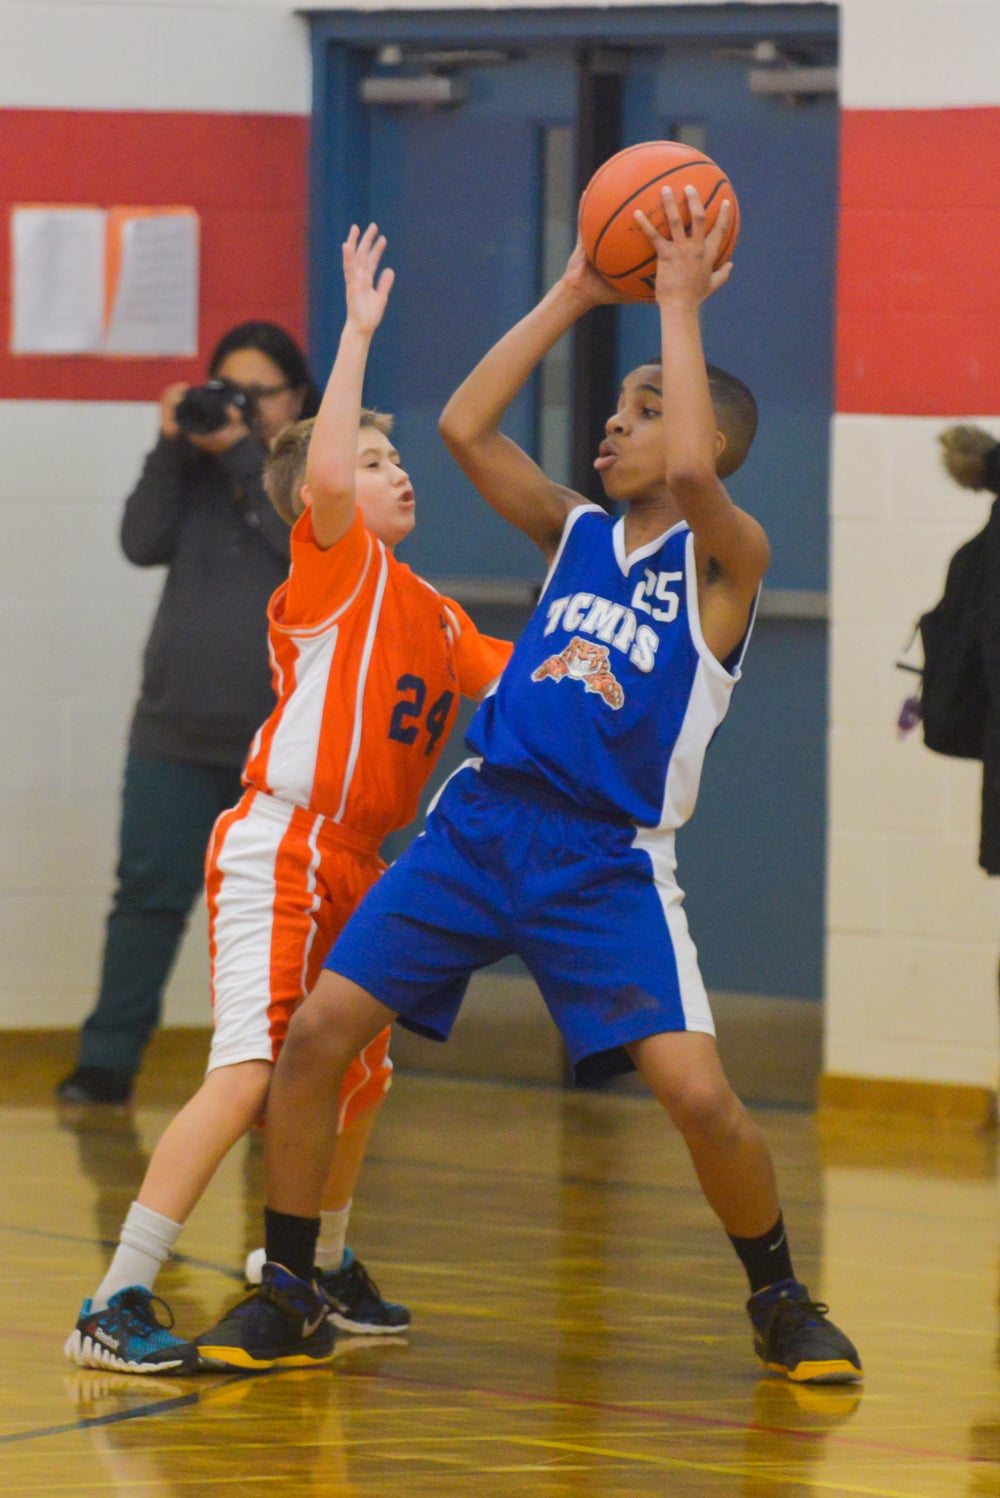 U14 Basketball vs TCMPS (8 of 14).jpg